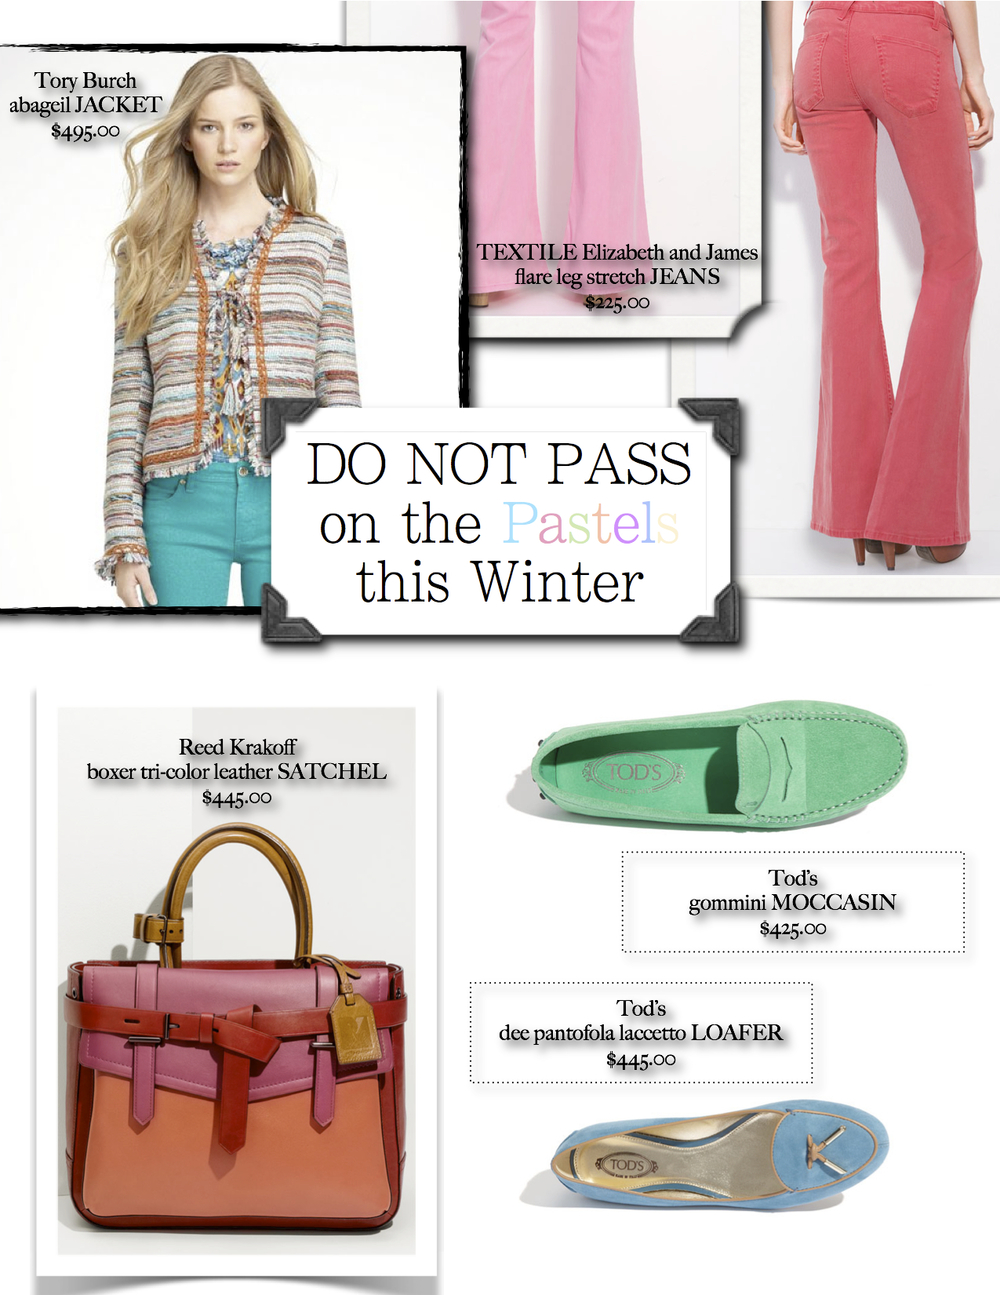 DO NOT PASS on Pastels this Winter PDF.jpg